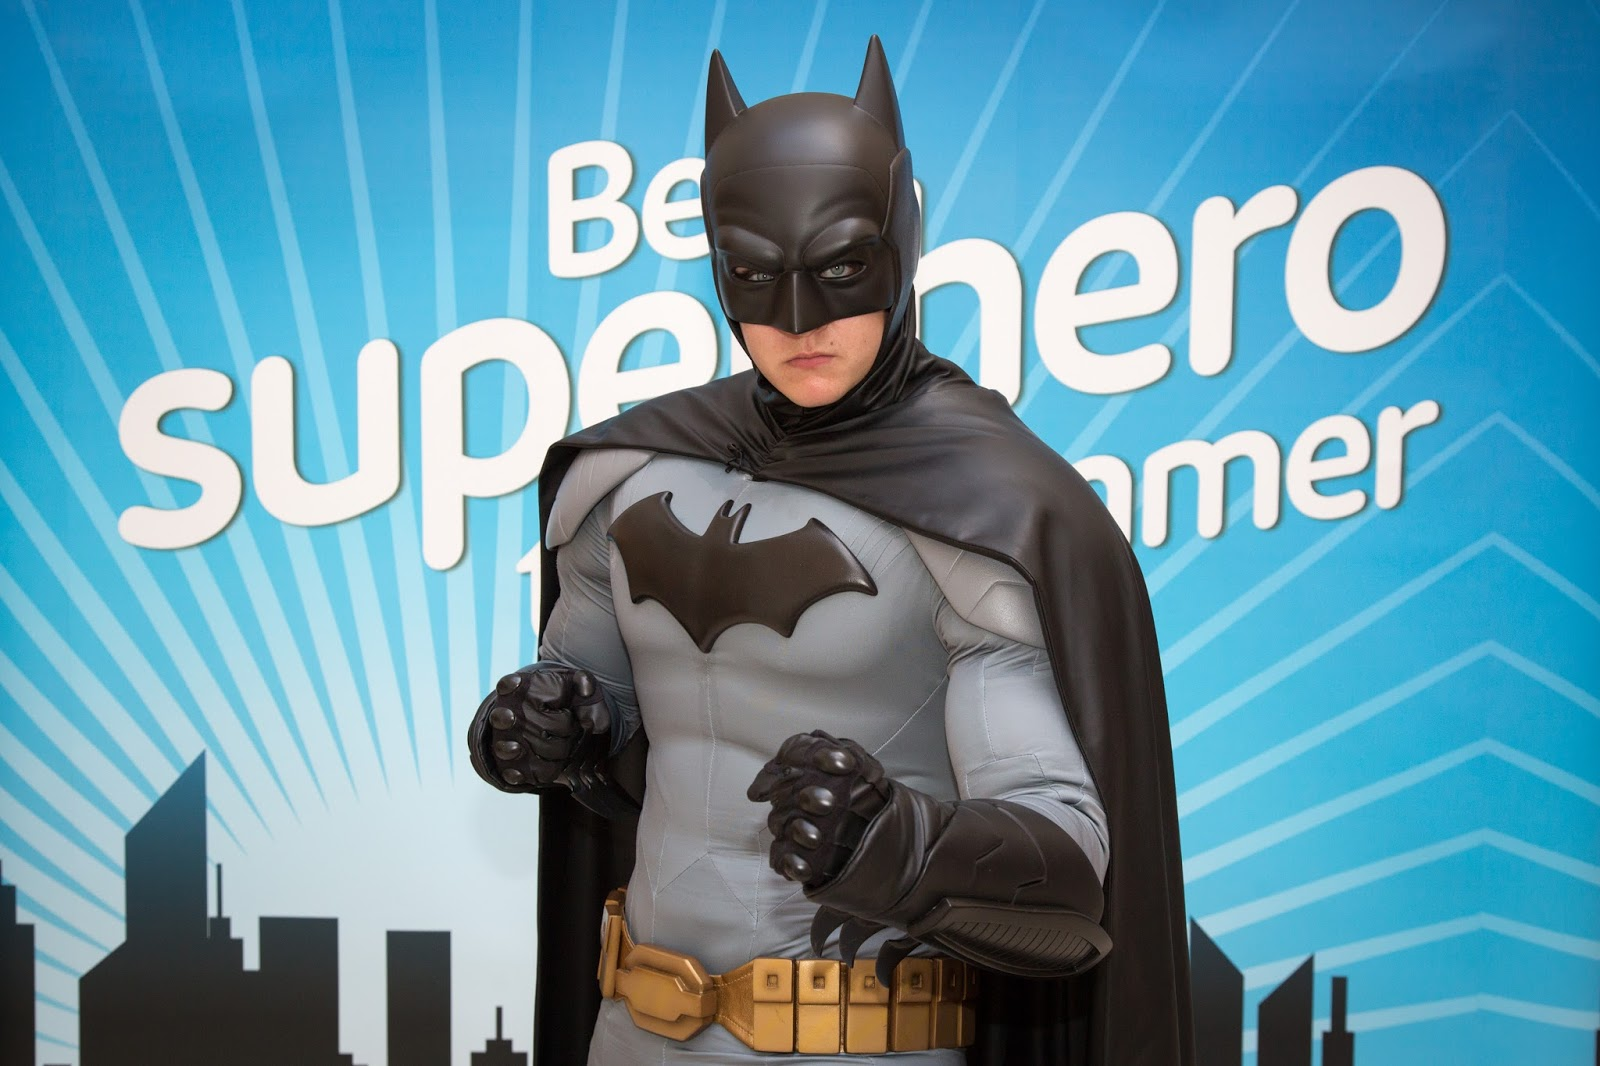 Grab Your FREE Tickets to meet BATMAN at intu Eldon Square - Sunday 31st July